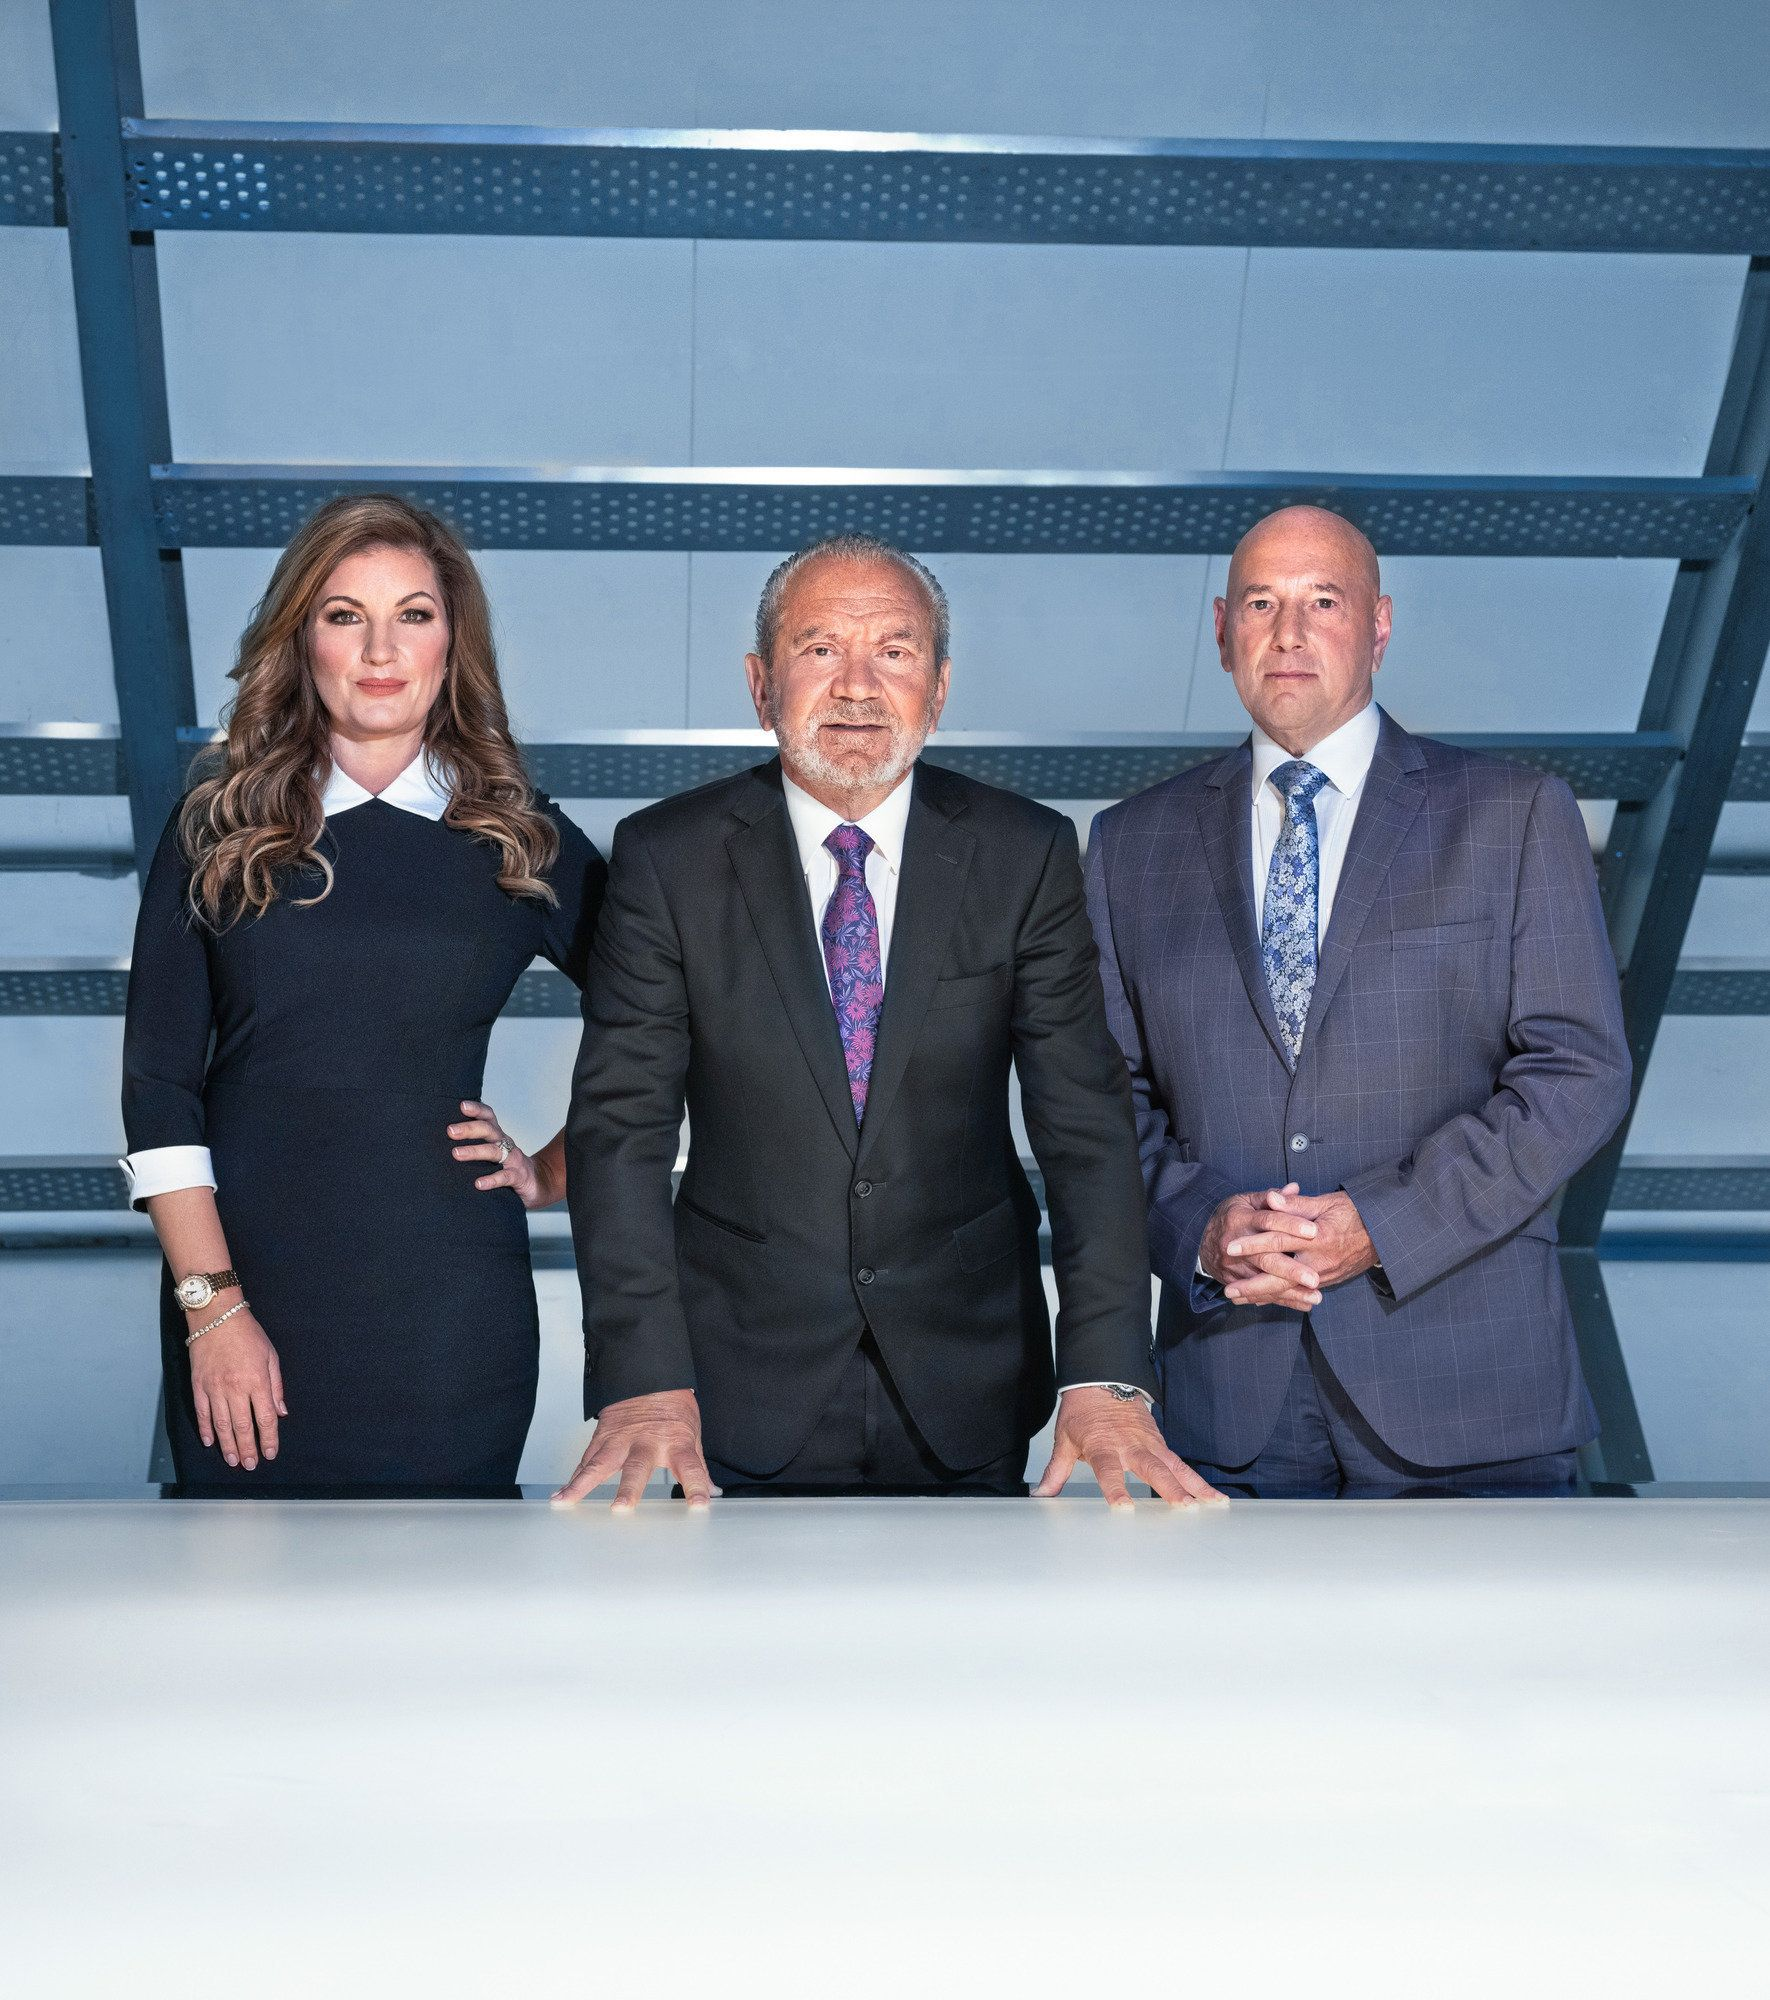 Lord Sugar with advisors Karren Brady and Claude